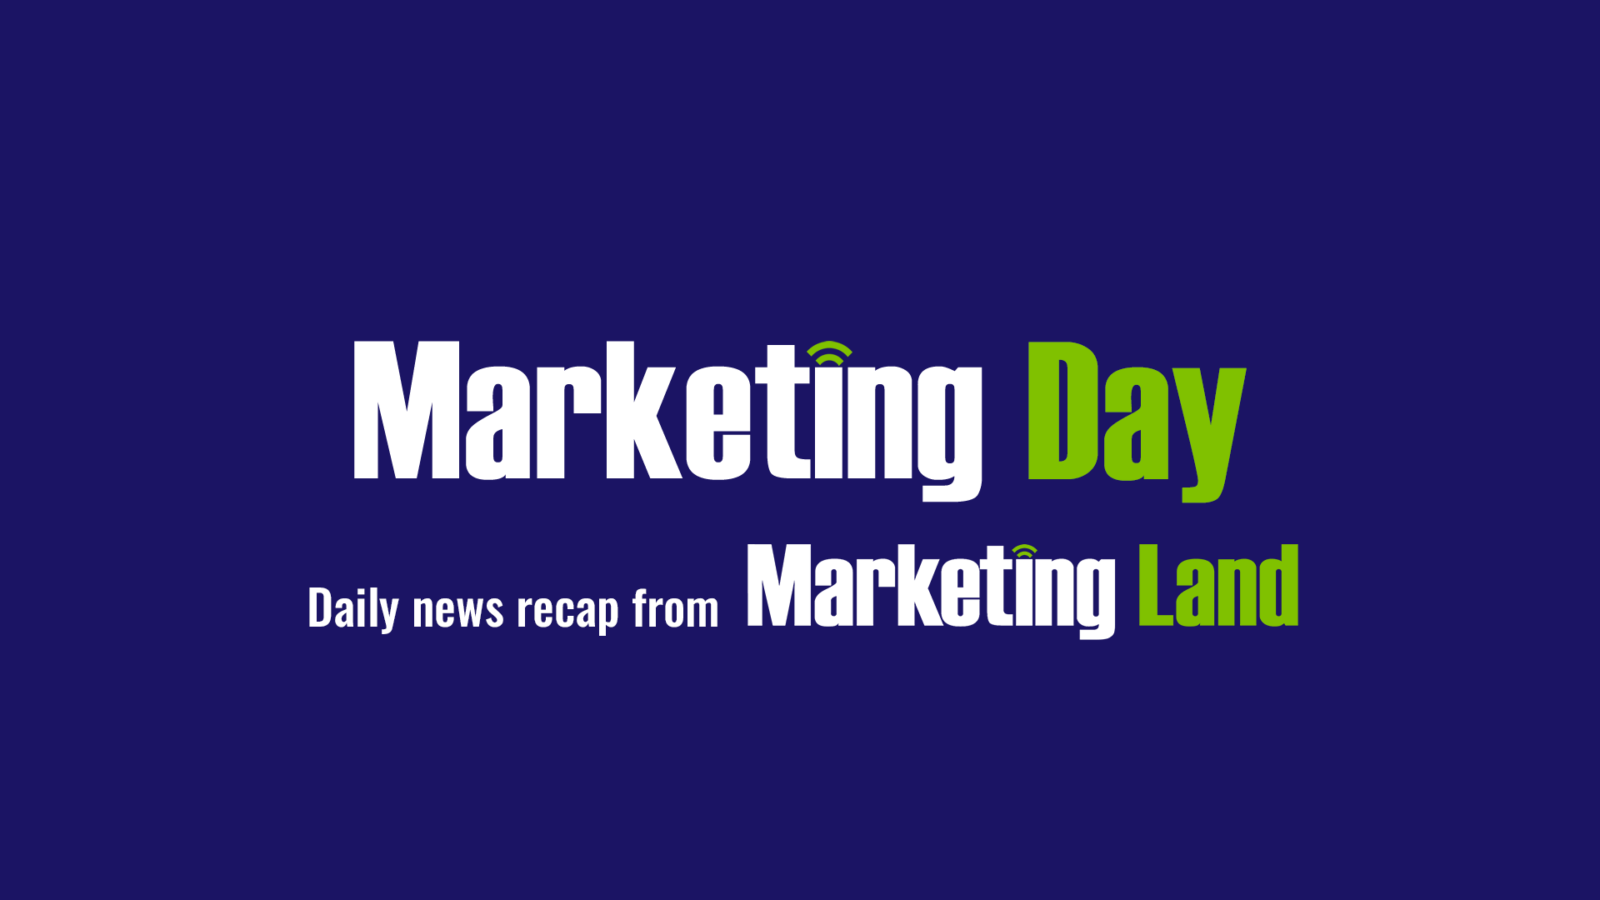 marketing day header v2 mday